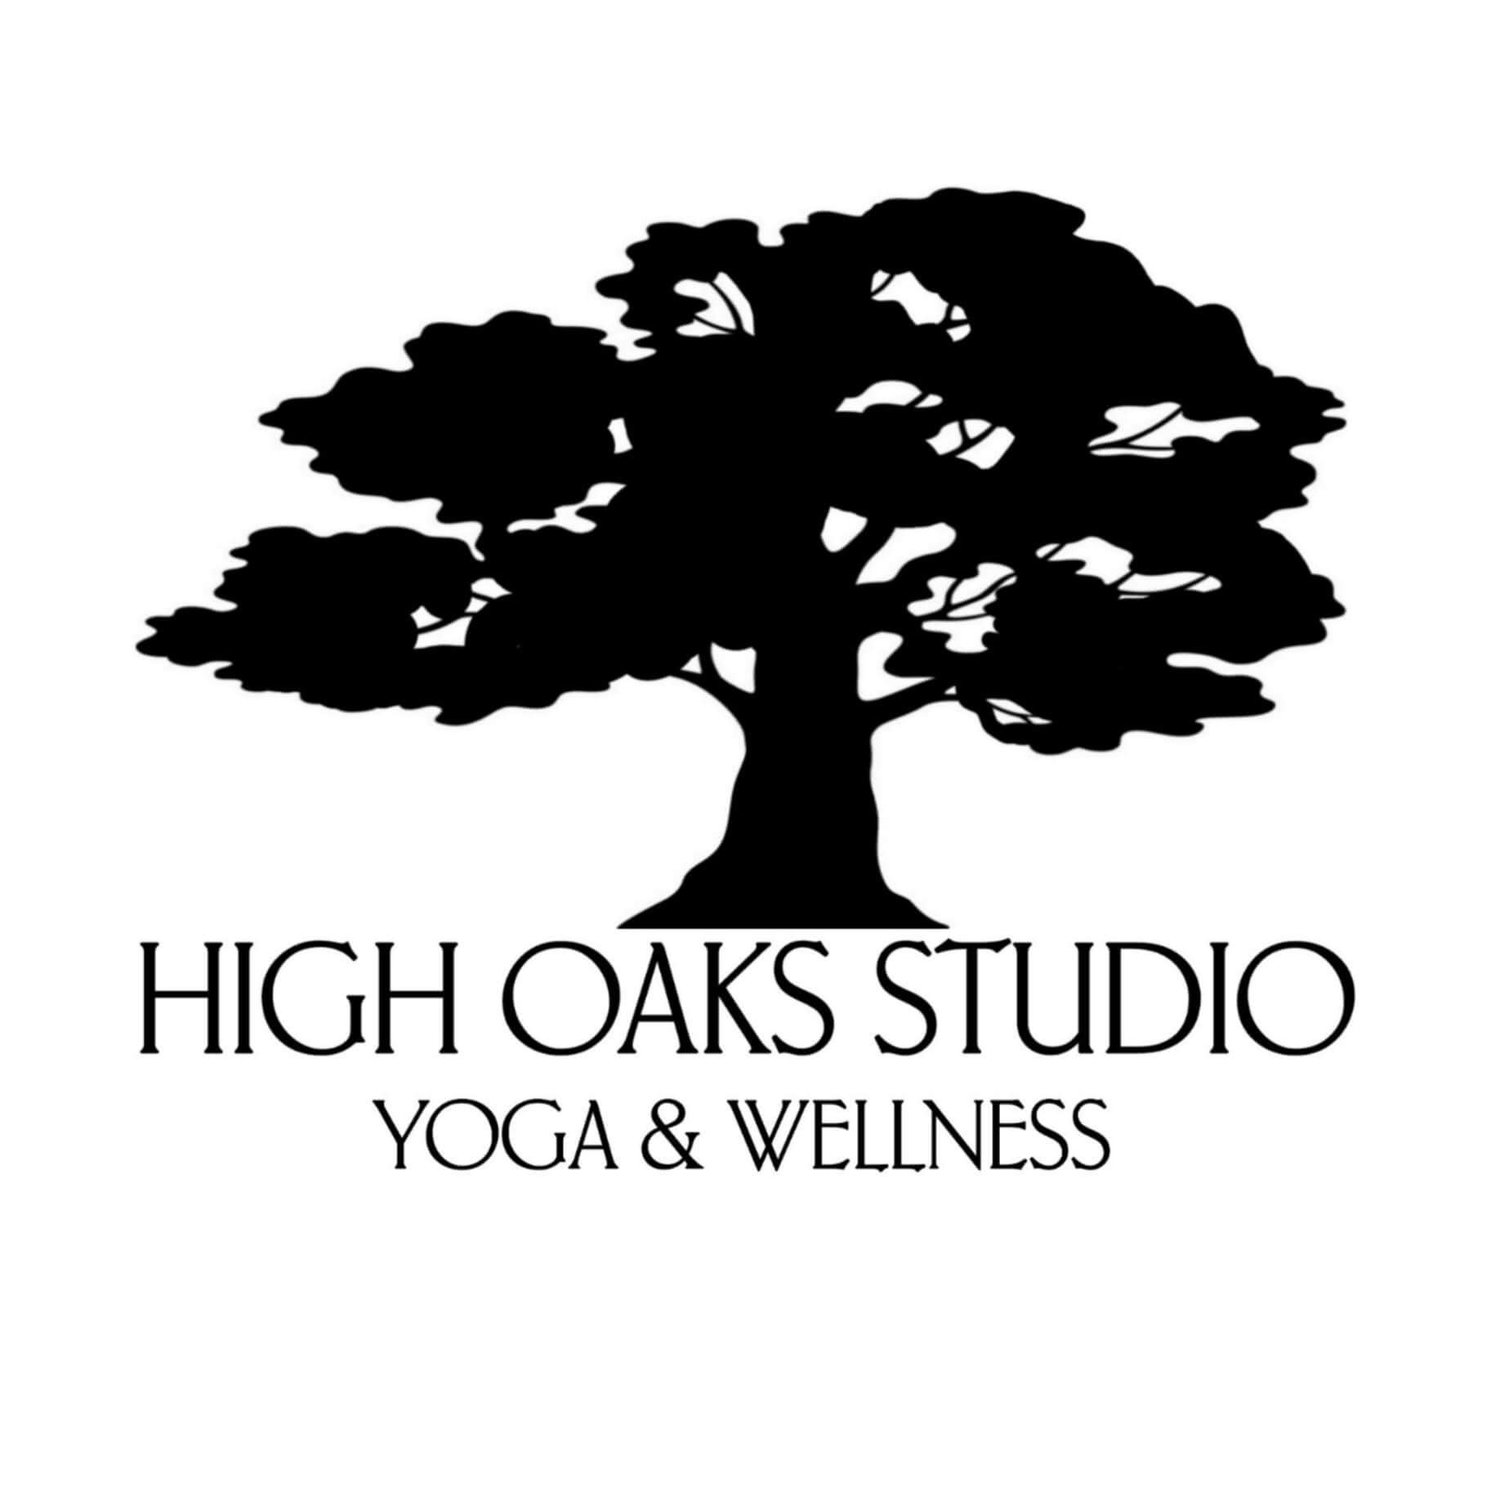 High Oaks Studio